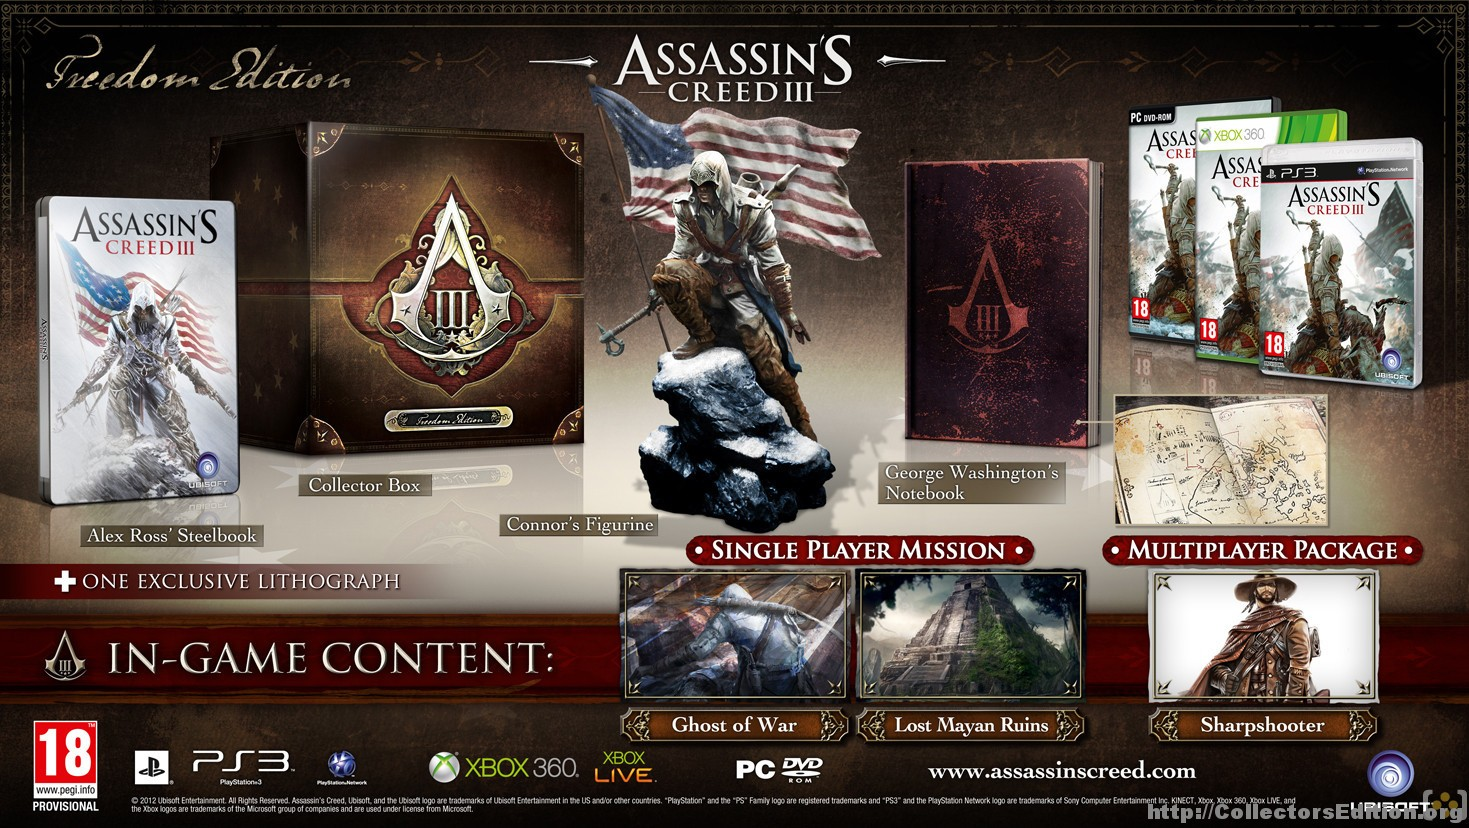 Assassin's Creed III Freedom Edition